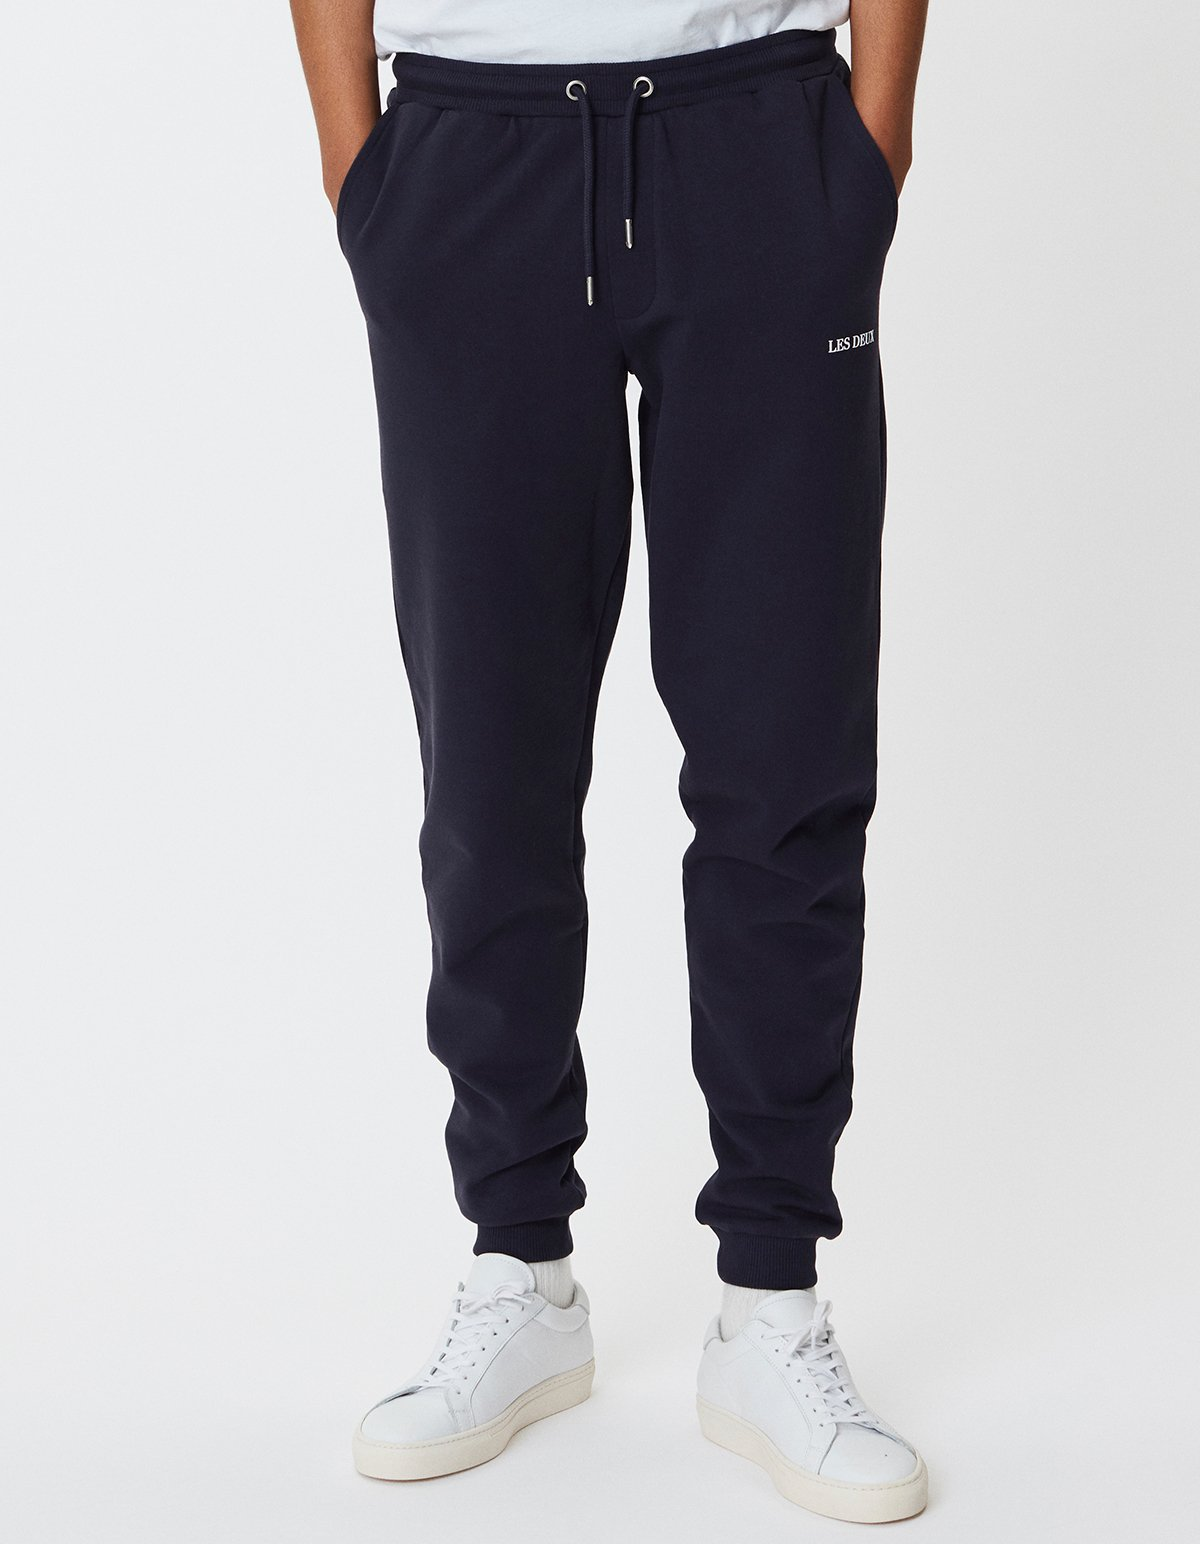 Lens Navy Sweatpants